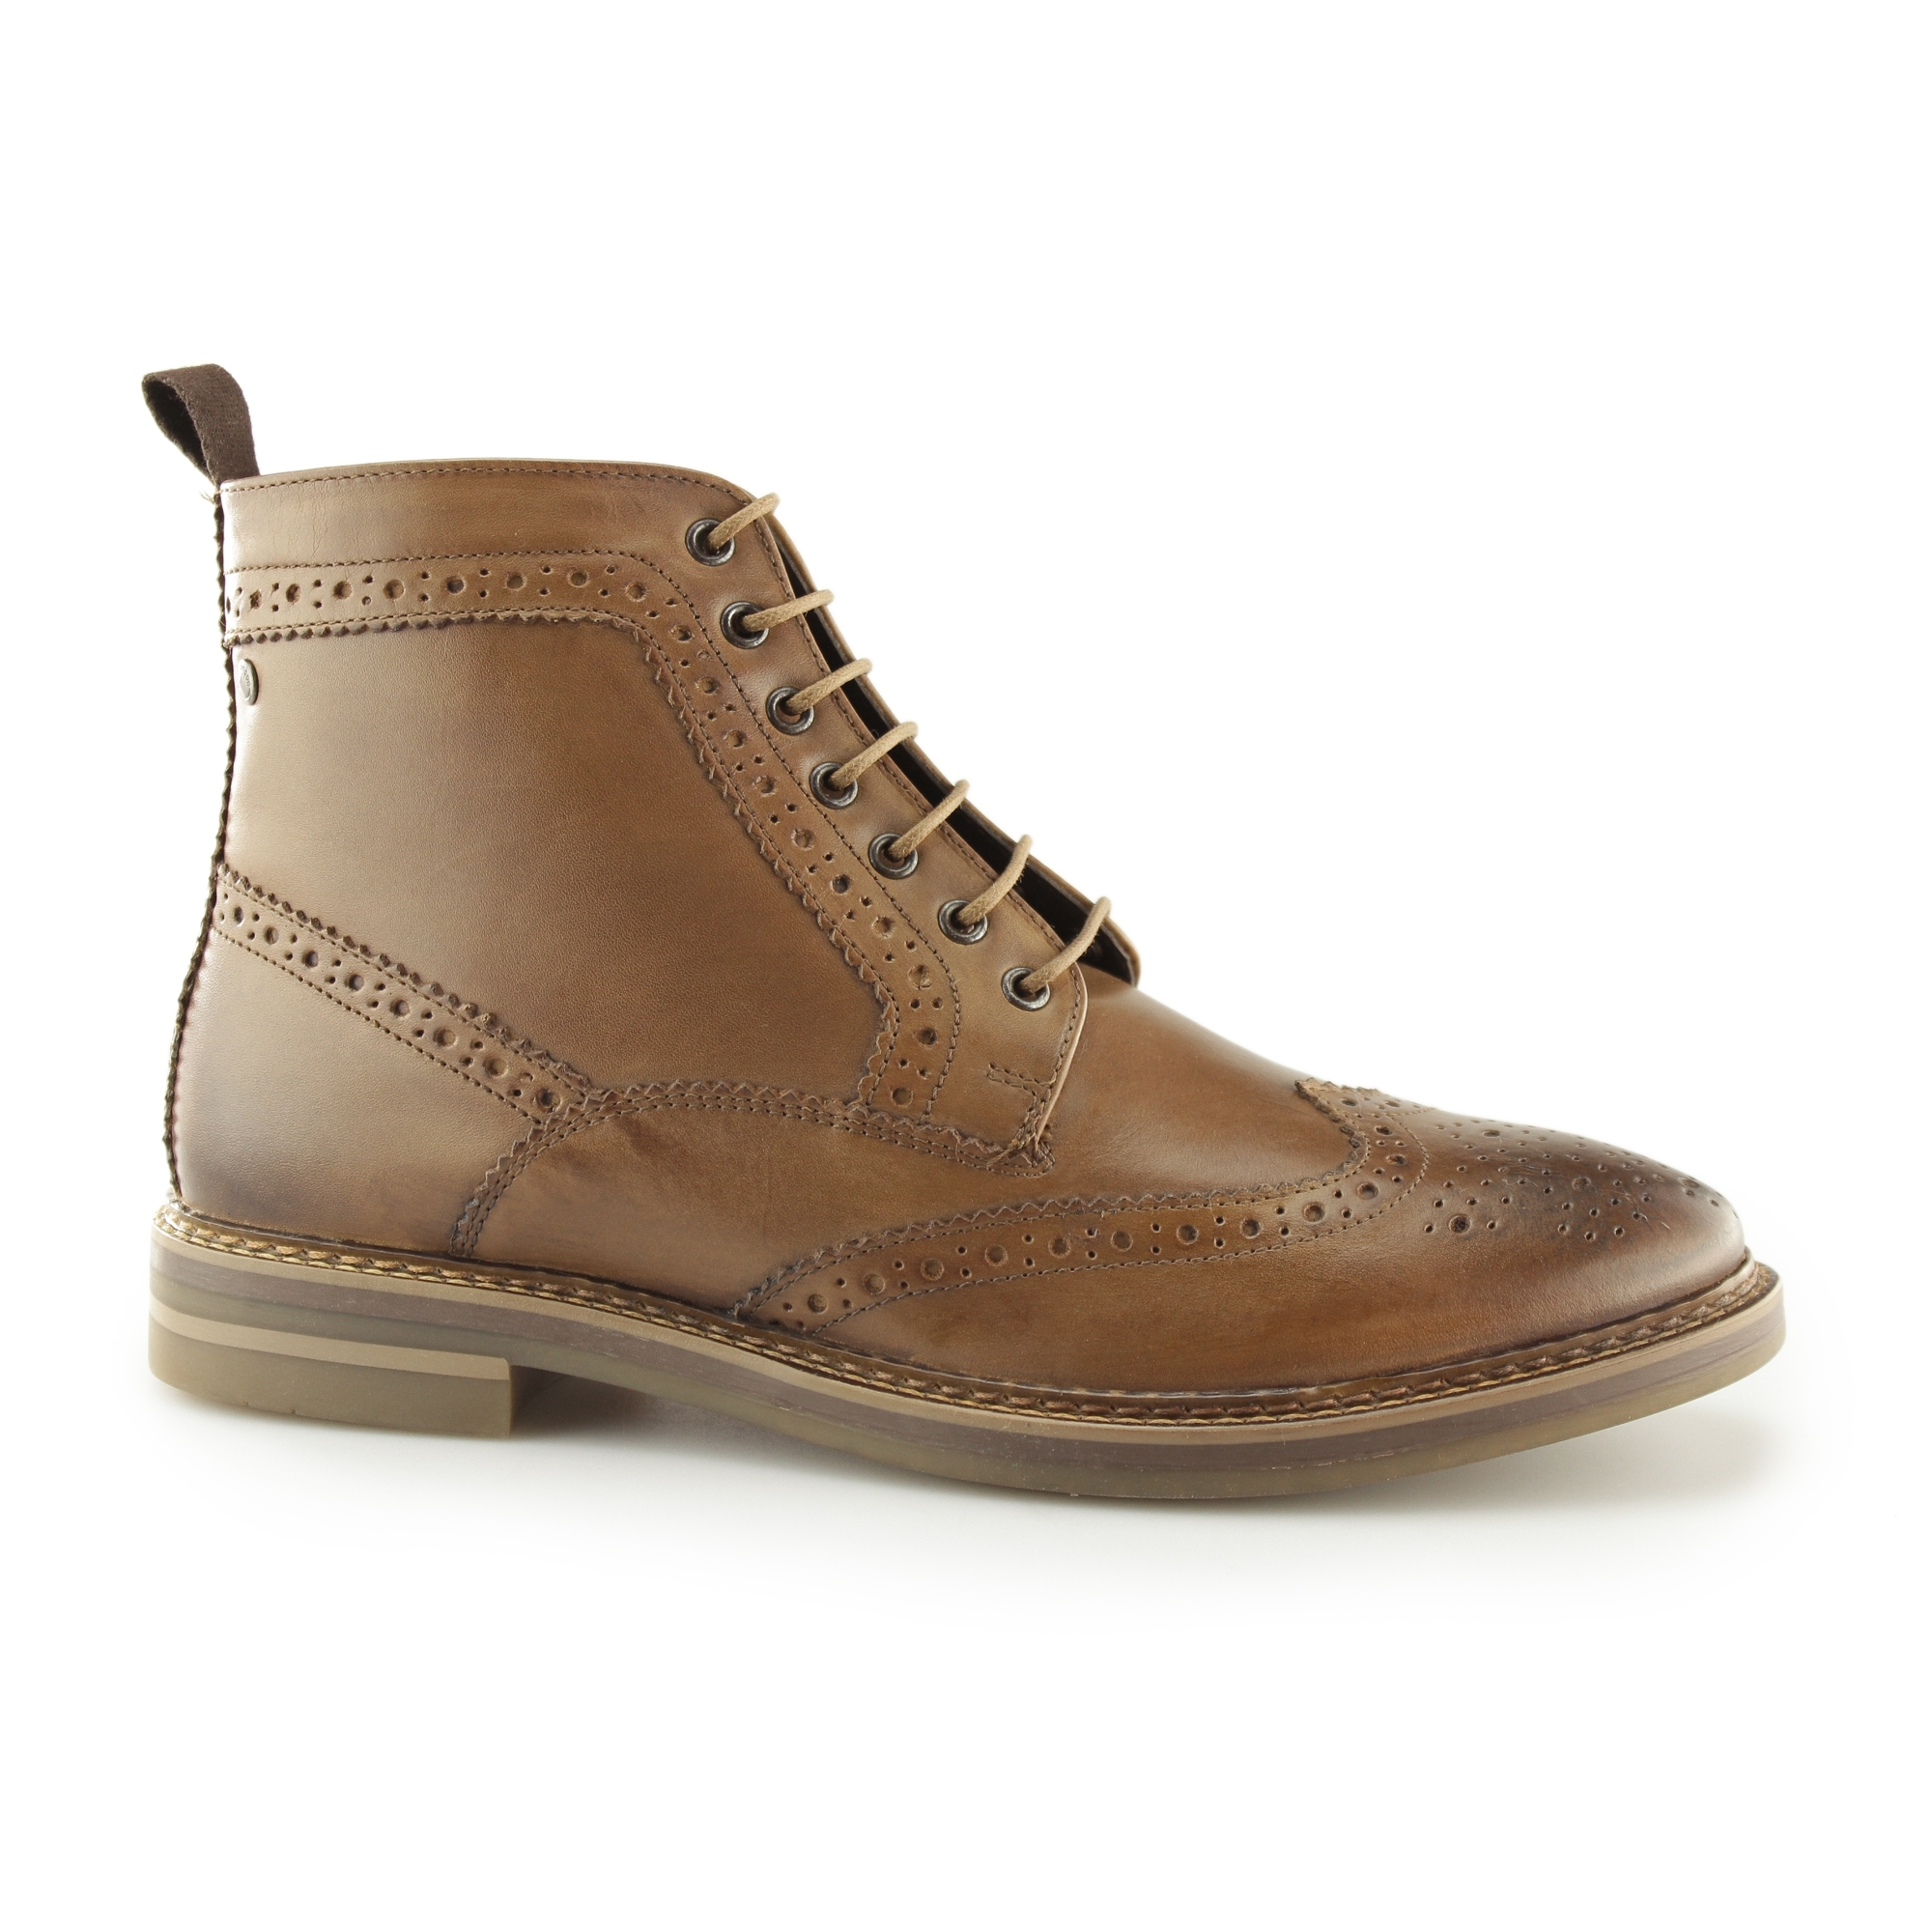 8cc24ef487a Base London HURST Mens Burnished Leather Derby Boots Tan